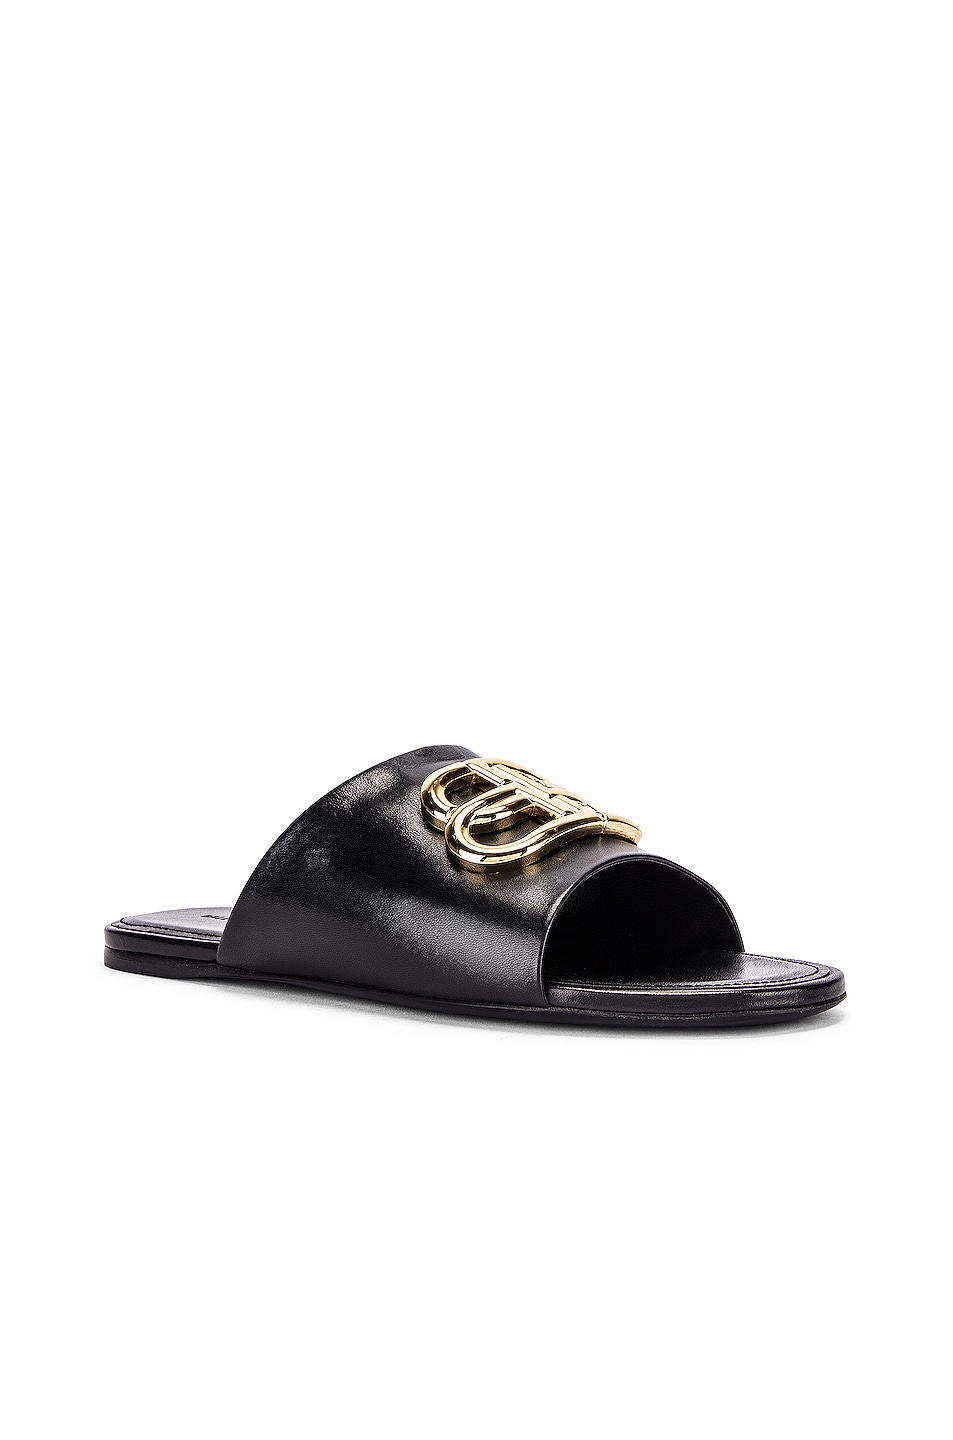 Image 3 of Balenciaga Ovall BB Slides in Black & Gold